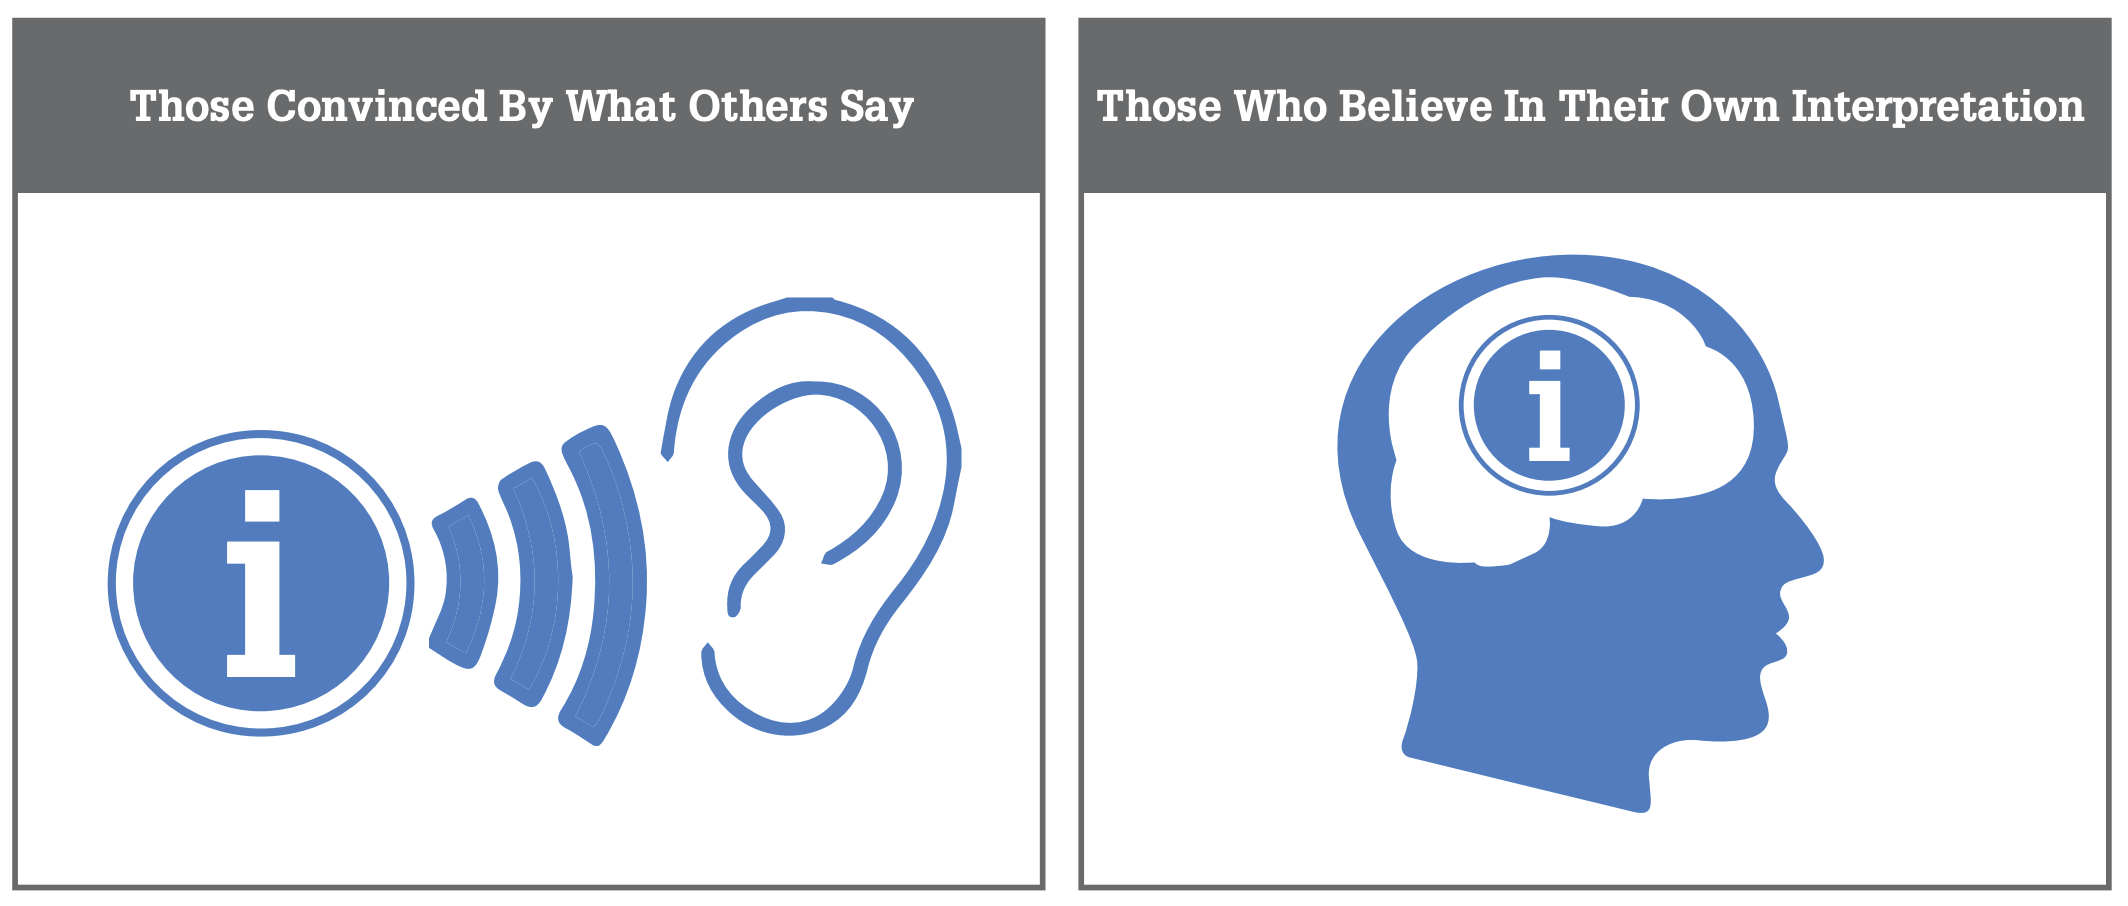 Those convinced by what others say and those who belief in their own interpretation.